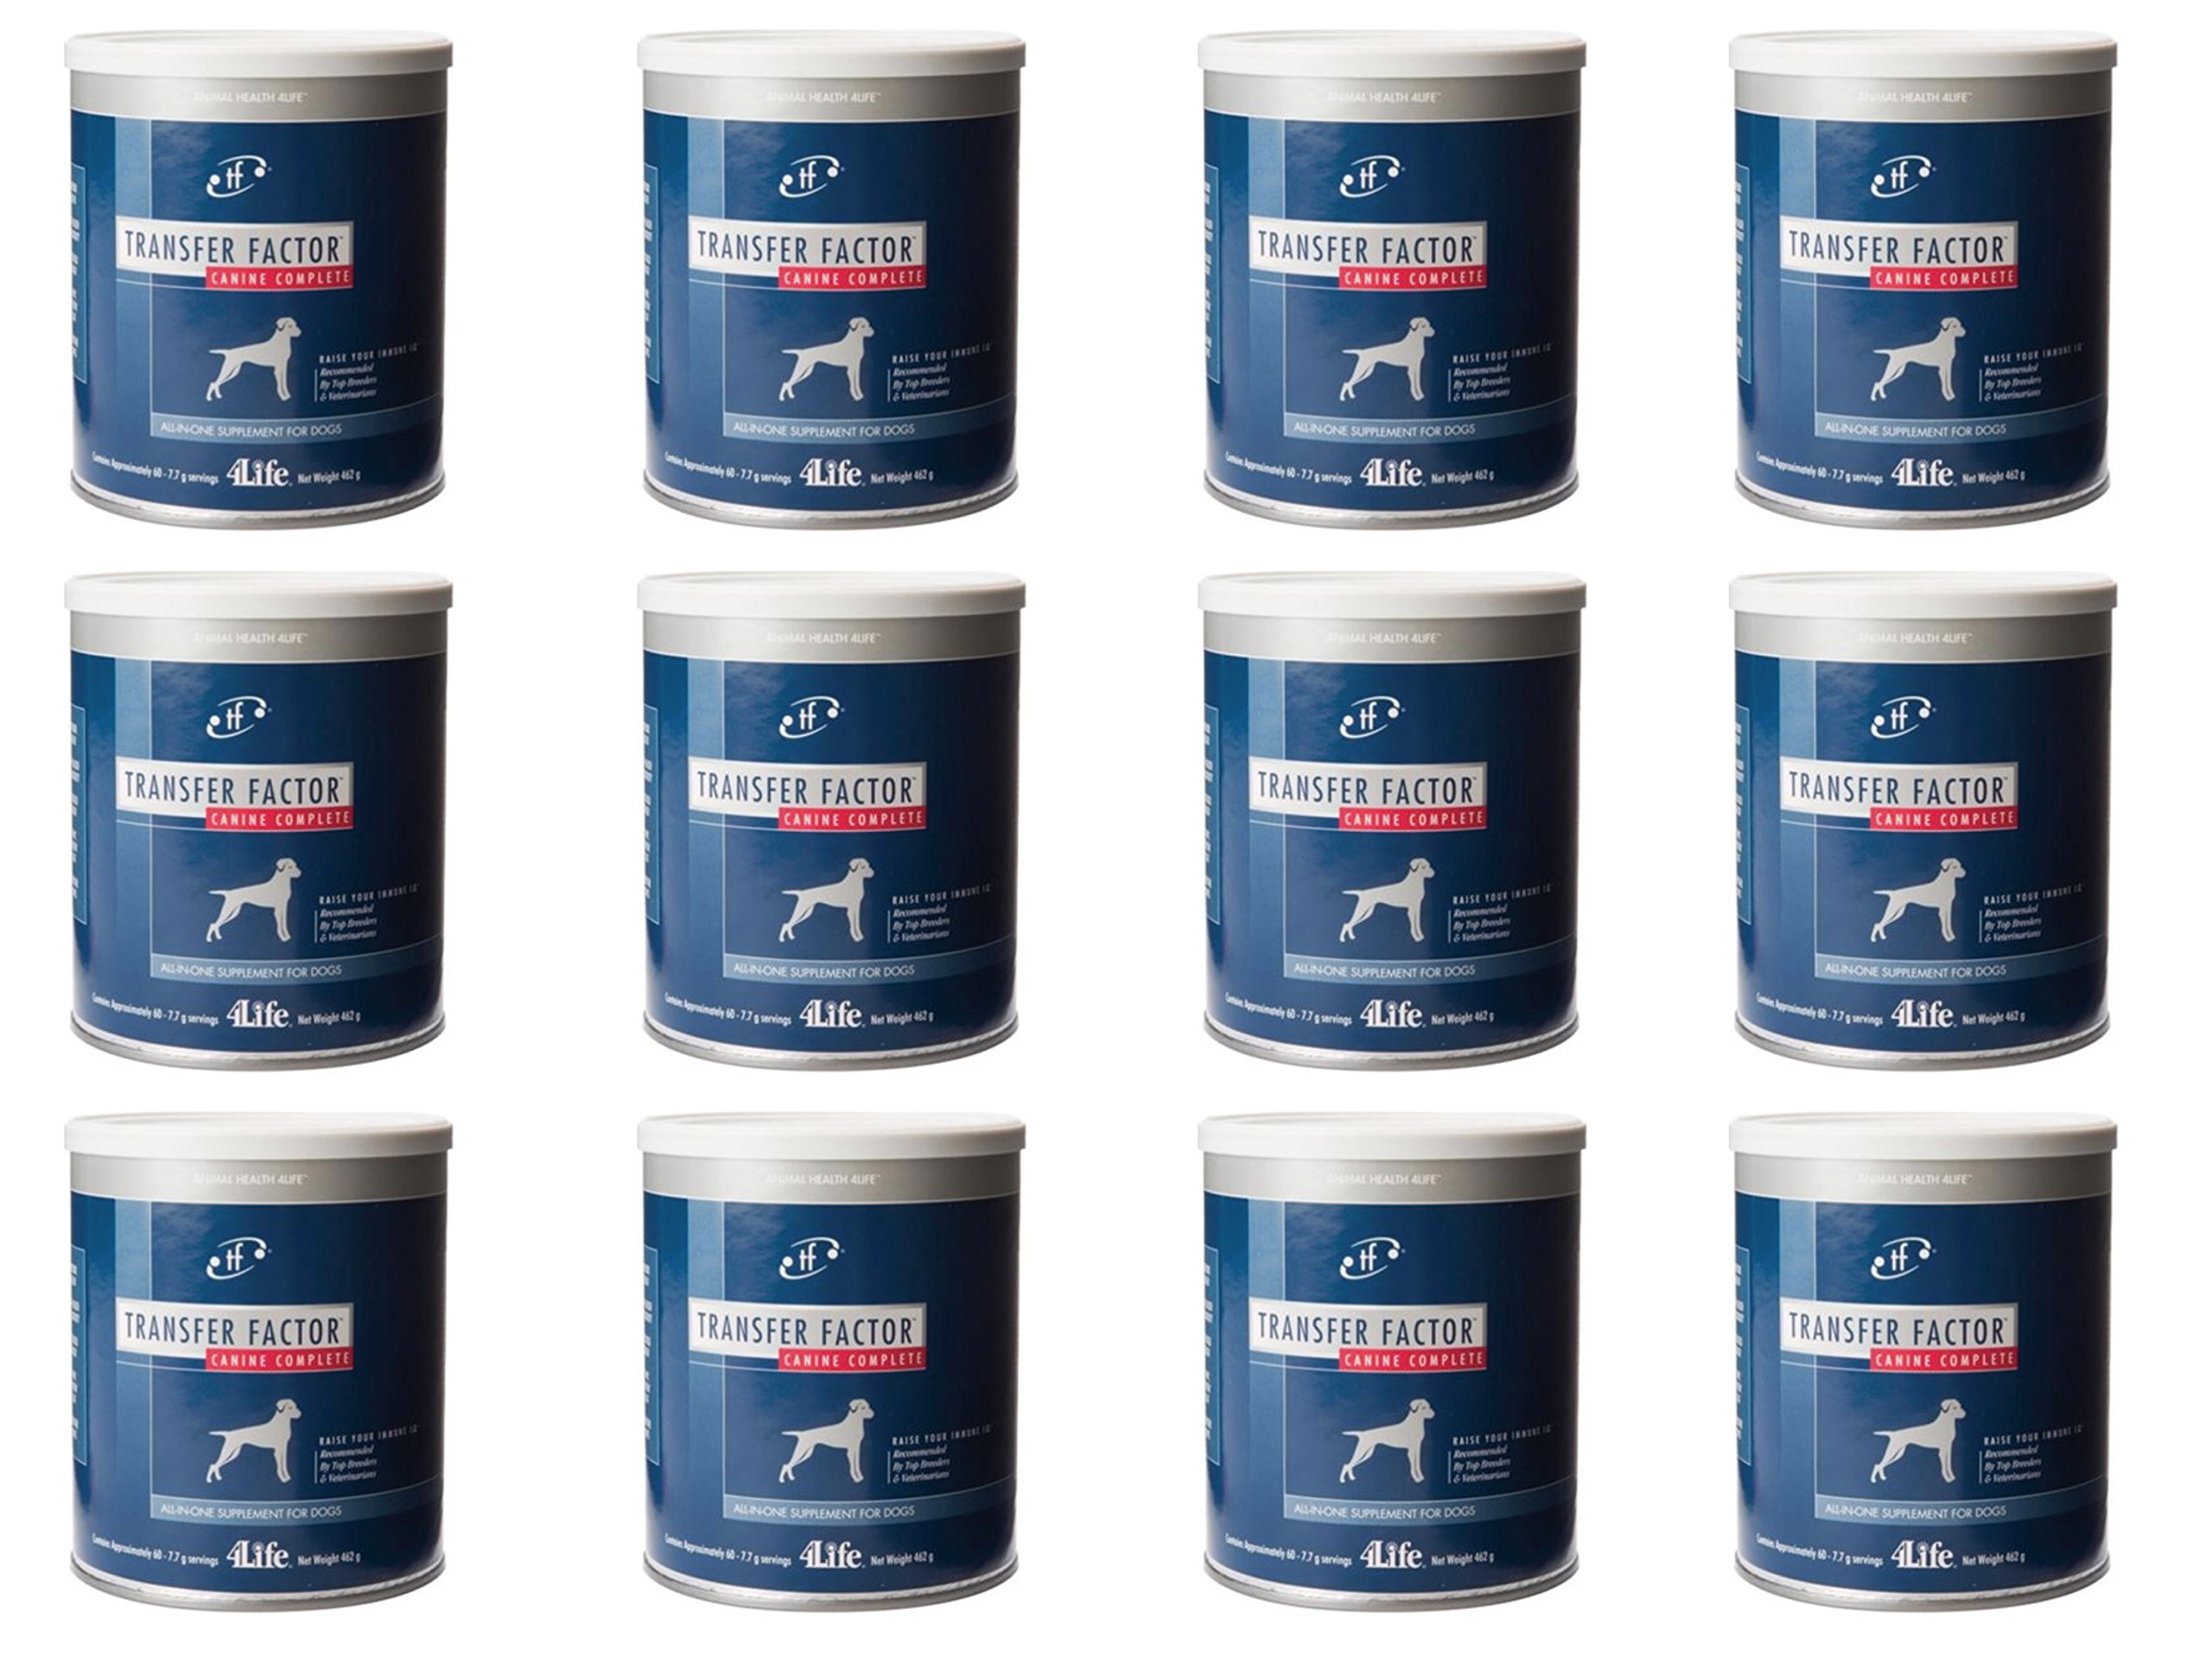 4Life Transfer Factor Canine Complete for Pets with Essential Vitamins & Protein (pack of 12)